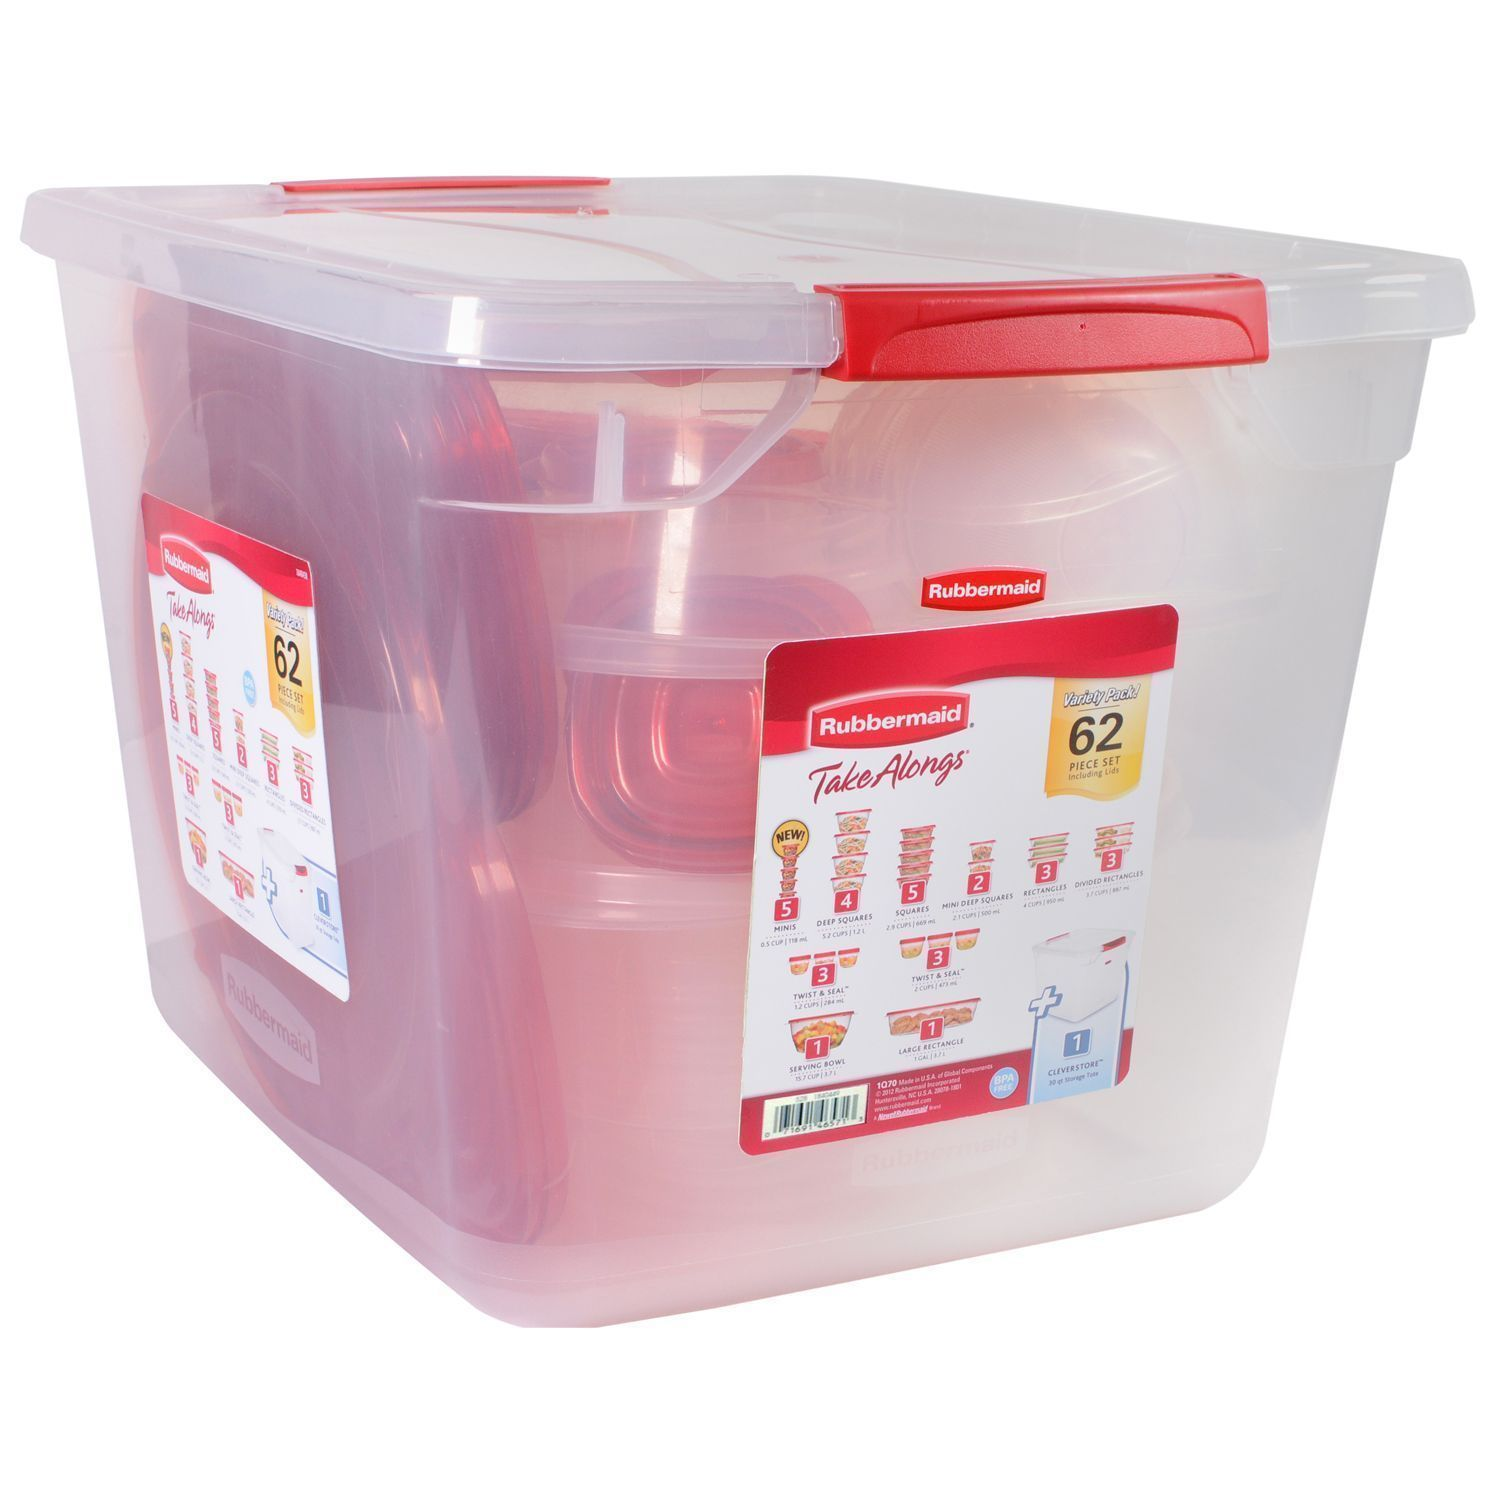 Rubbermaid Food Storage Containers Home & Garden